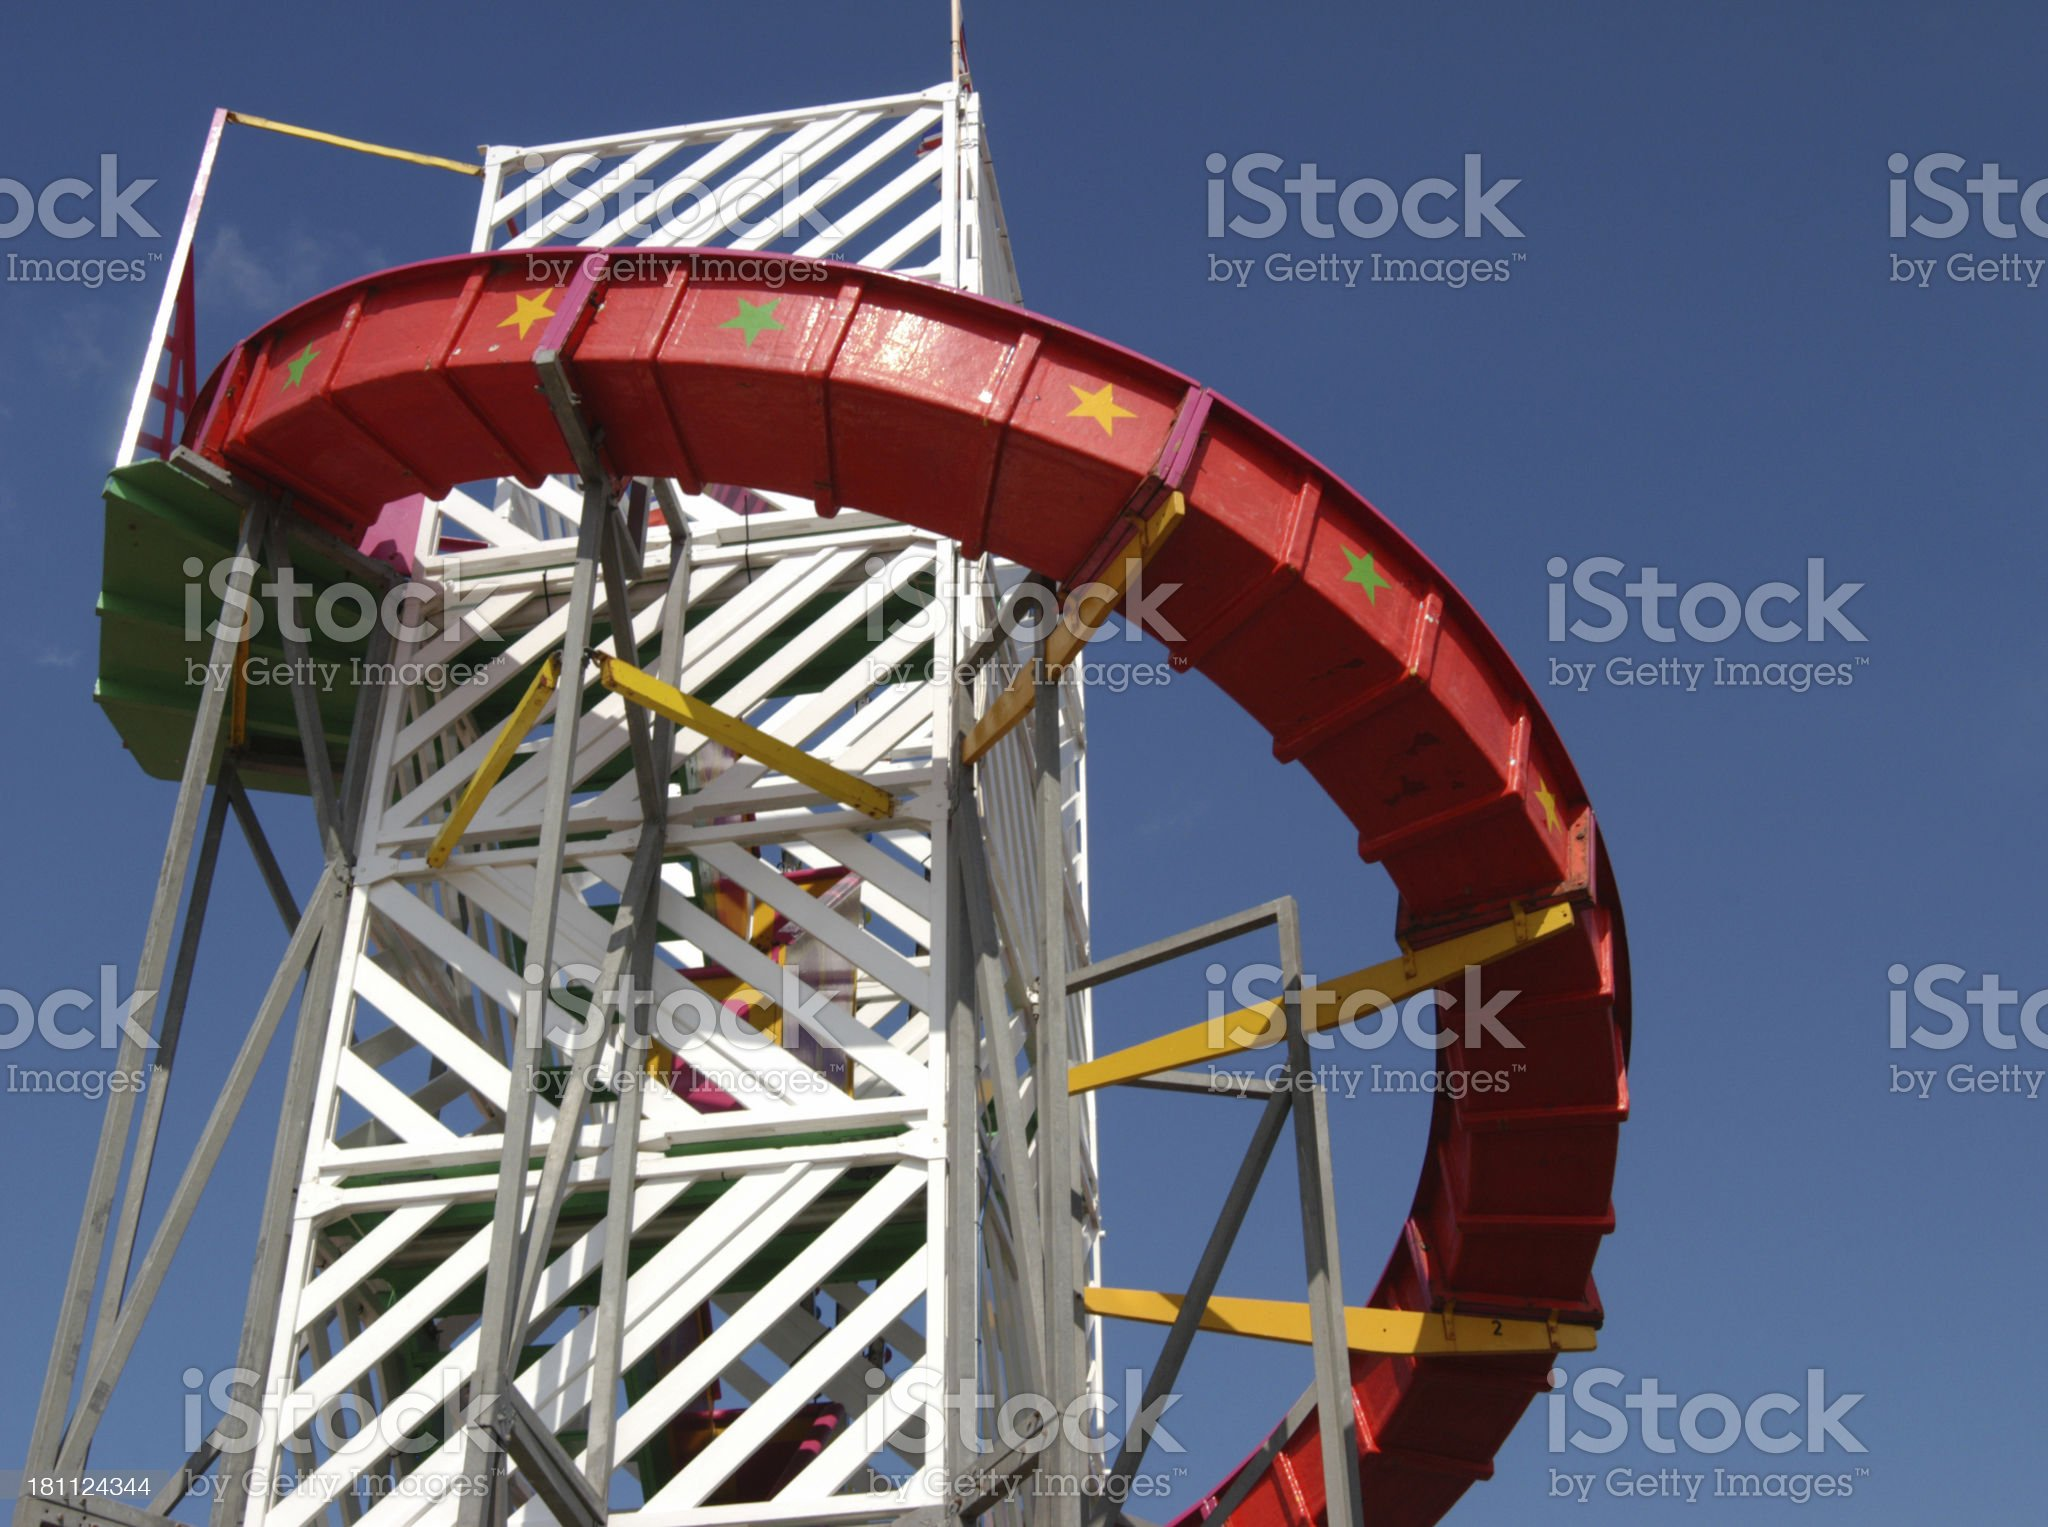 Helter Skelter #2 royalty-free stock photo